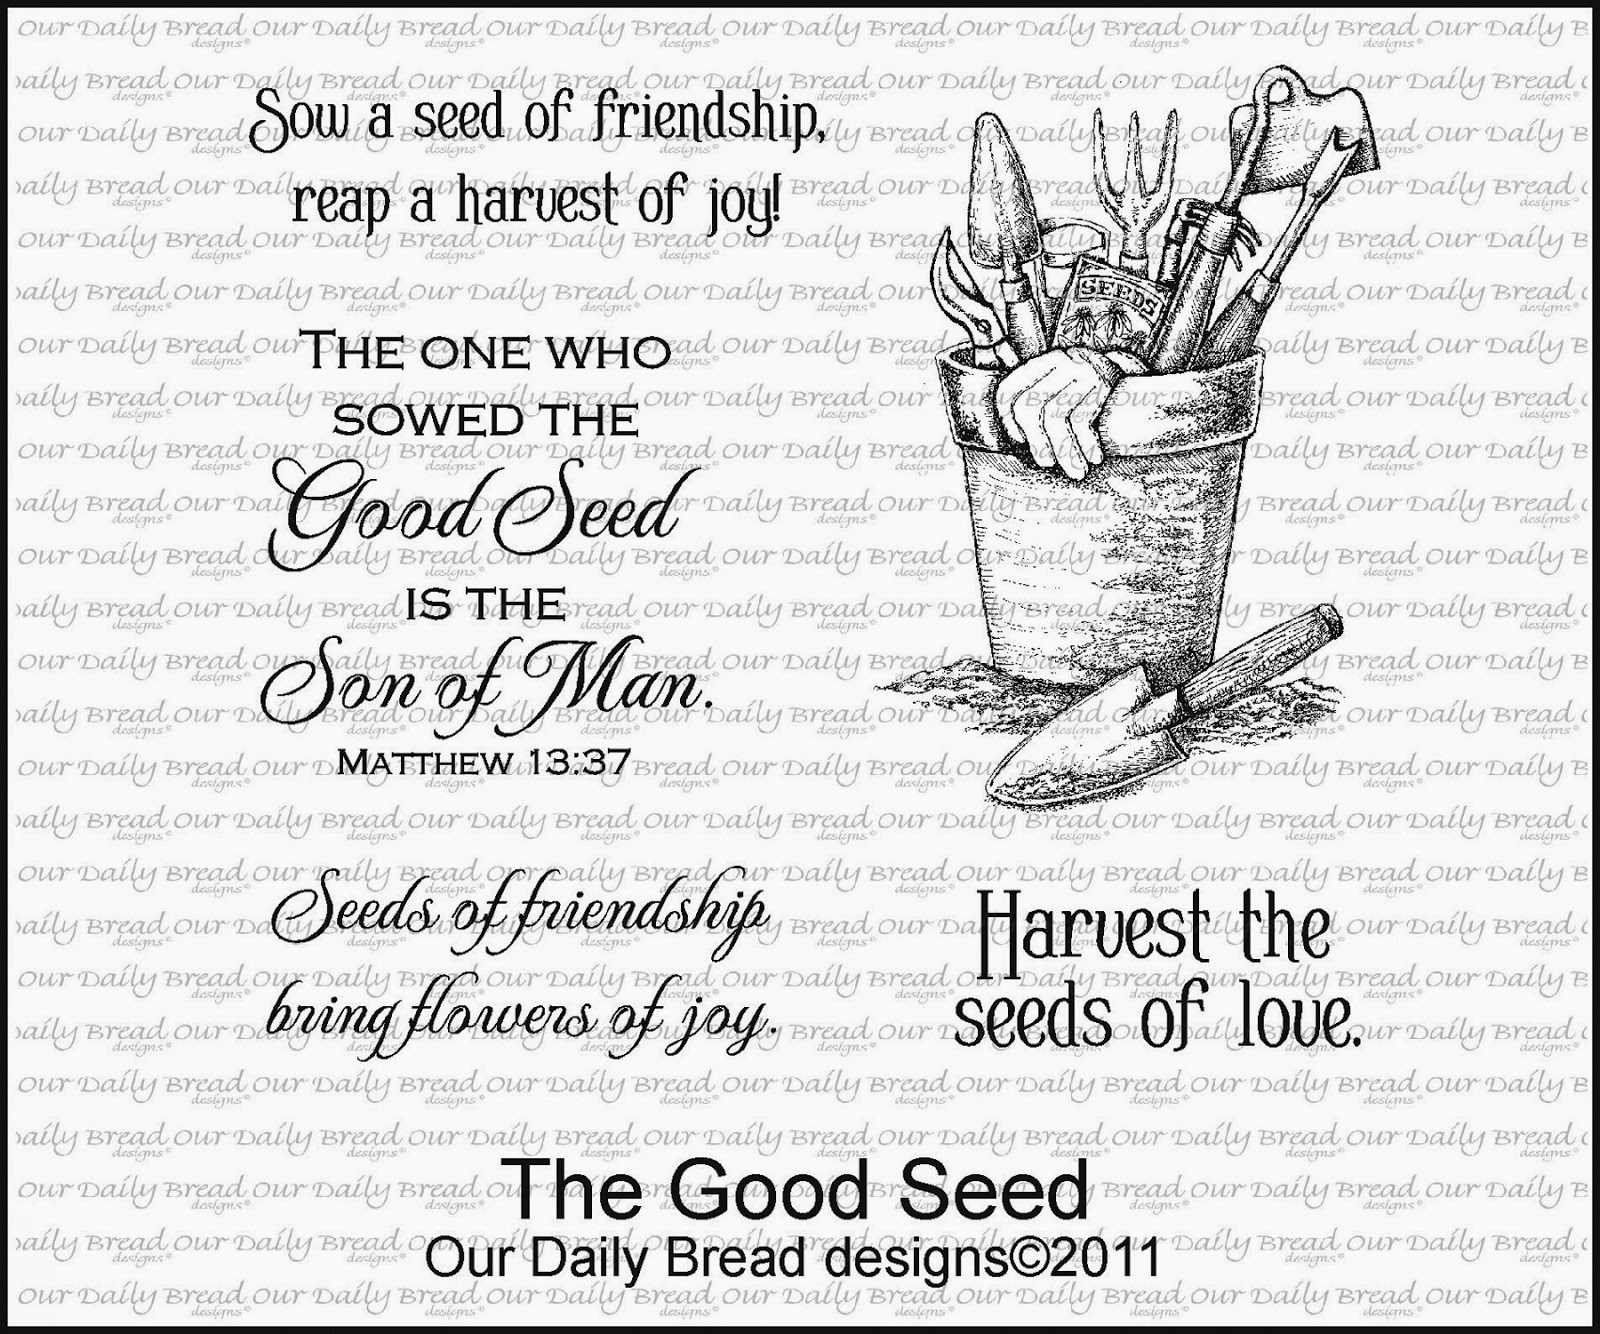 Our Daily Bread designs The Good Seed